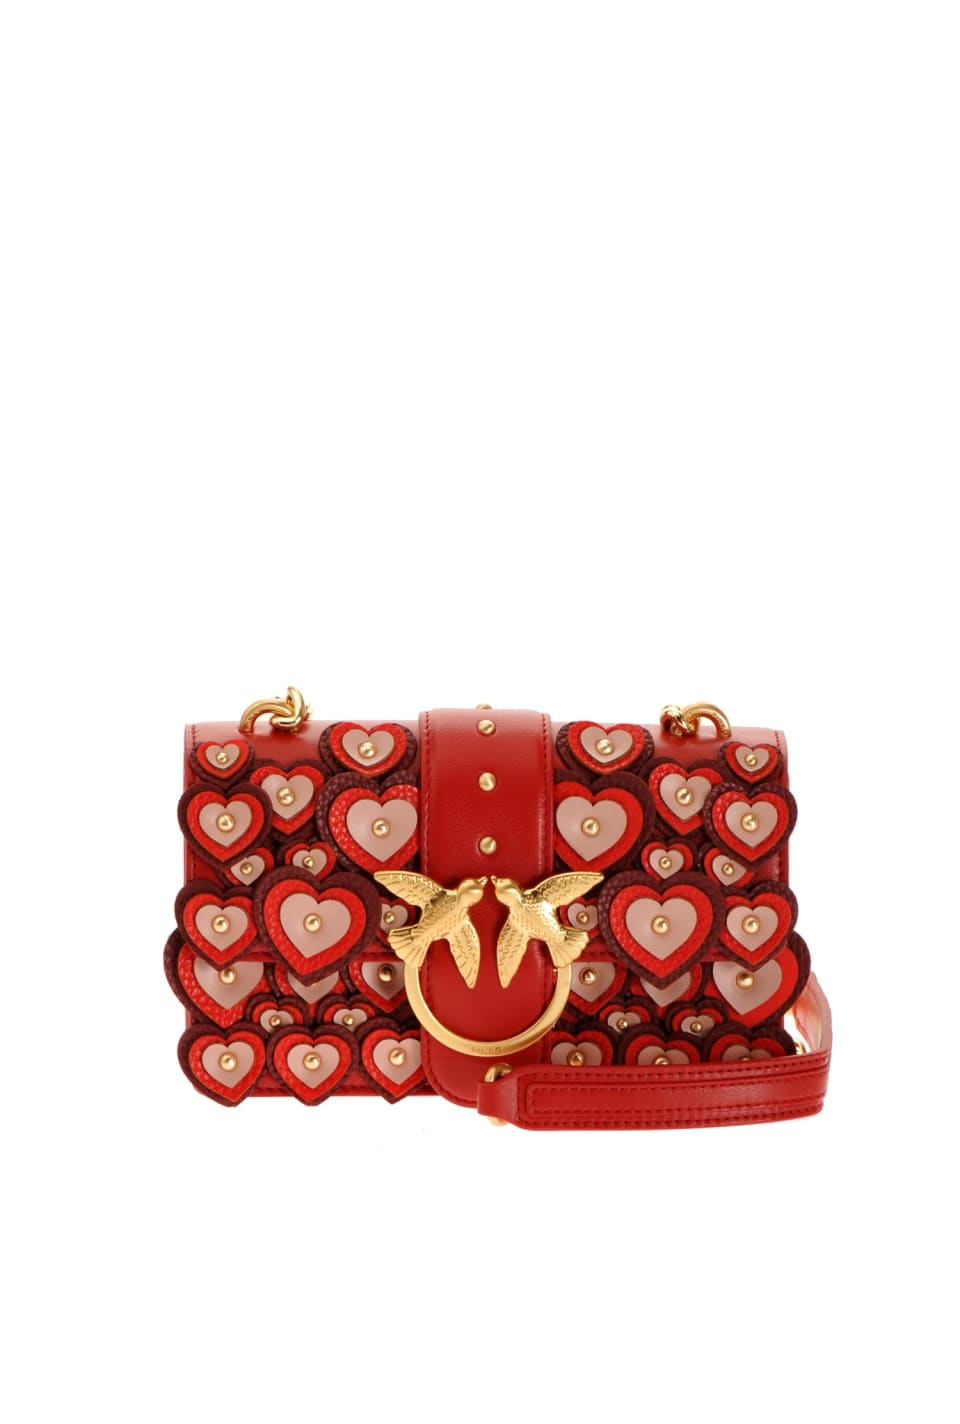 Mini Love Bag Full Love with appliquéd hearts - Pinko